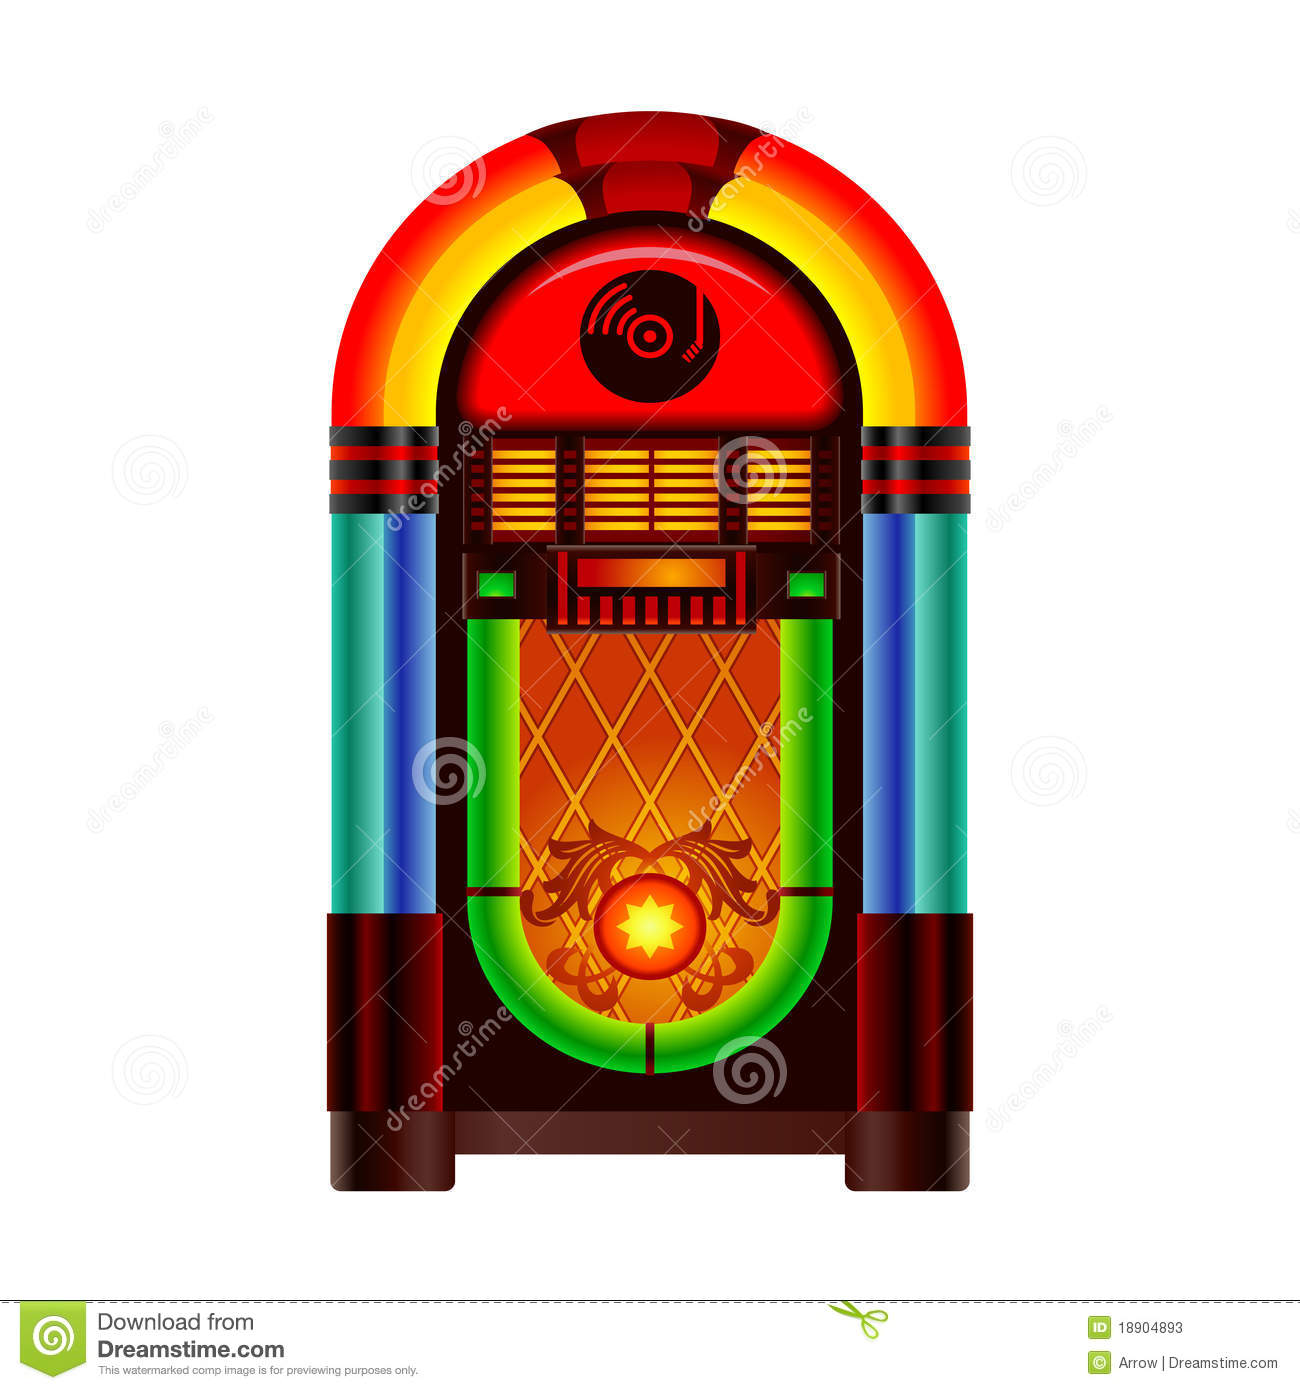 Retro jukebox music and dance player on white background.